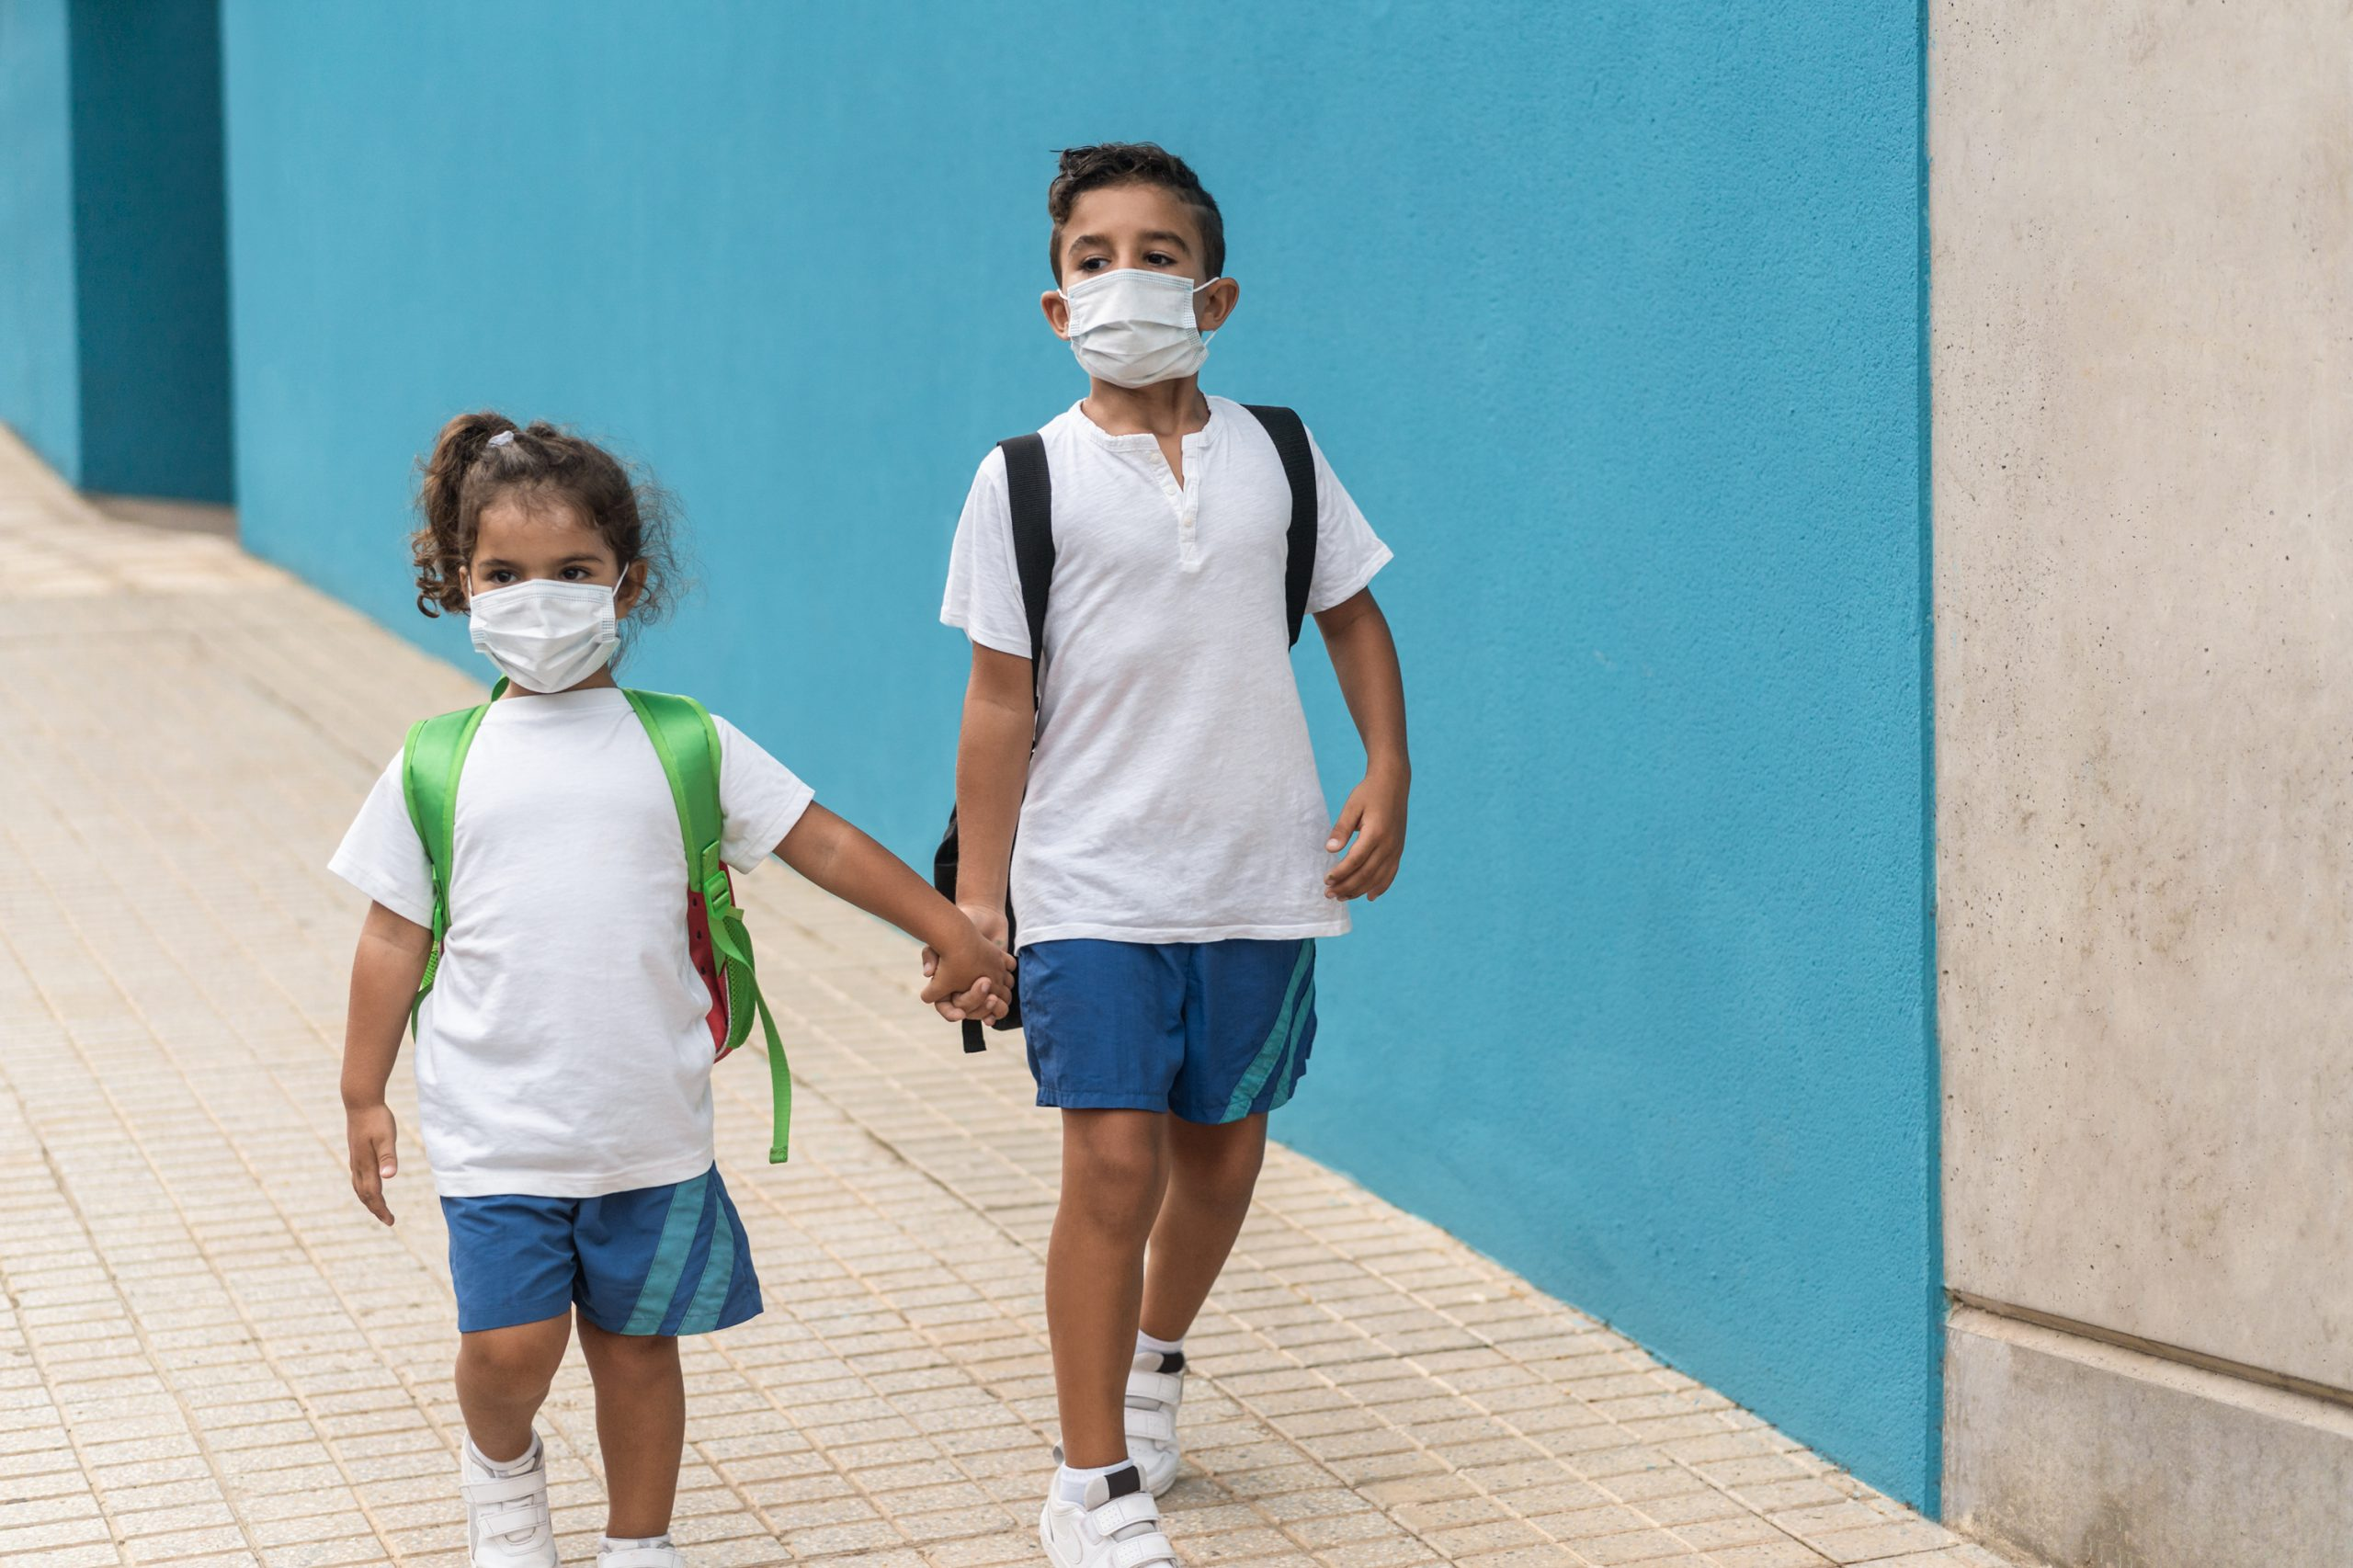 Children With Face Mask Going Back To School During Coronavirus Outbreak Focus On Boy Face